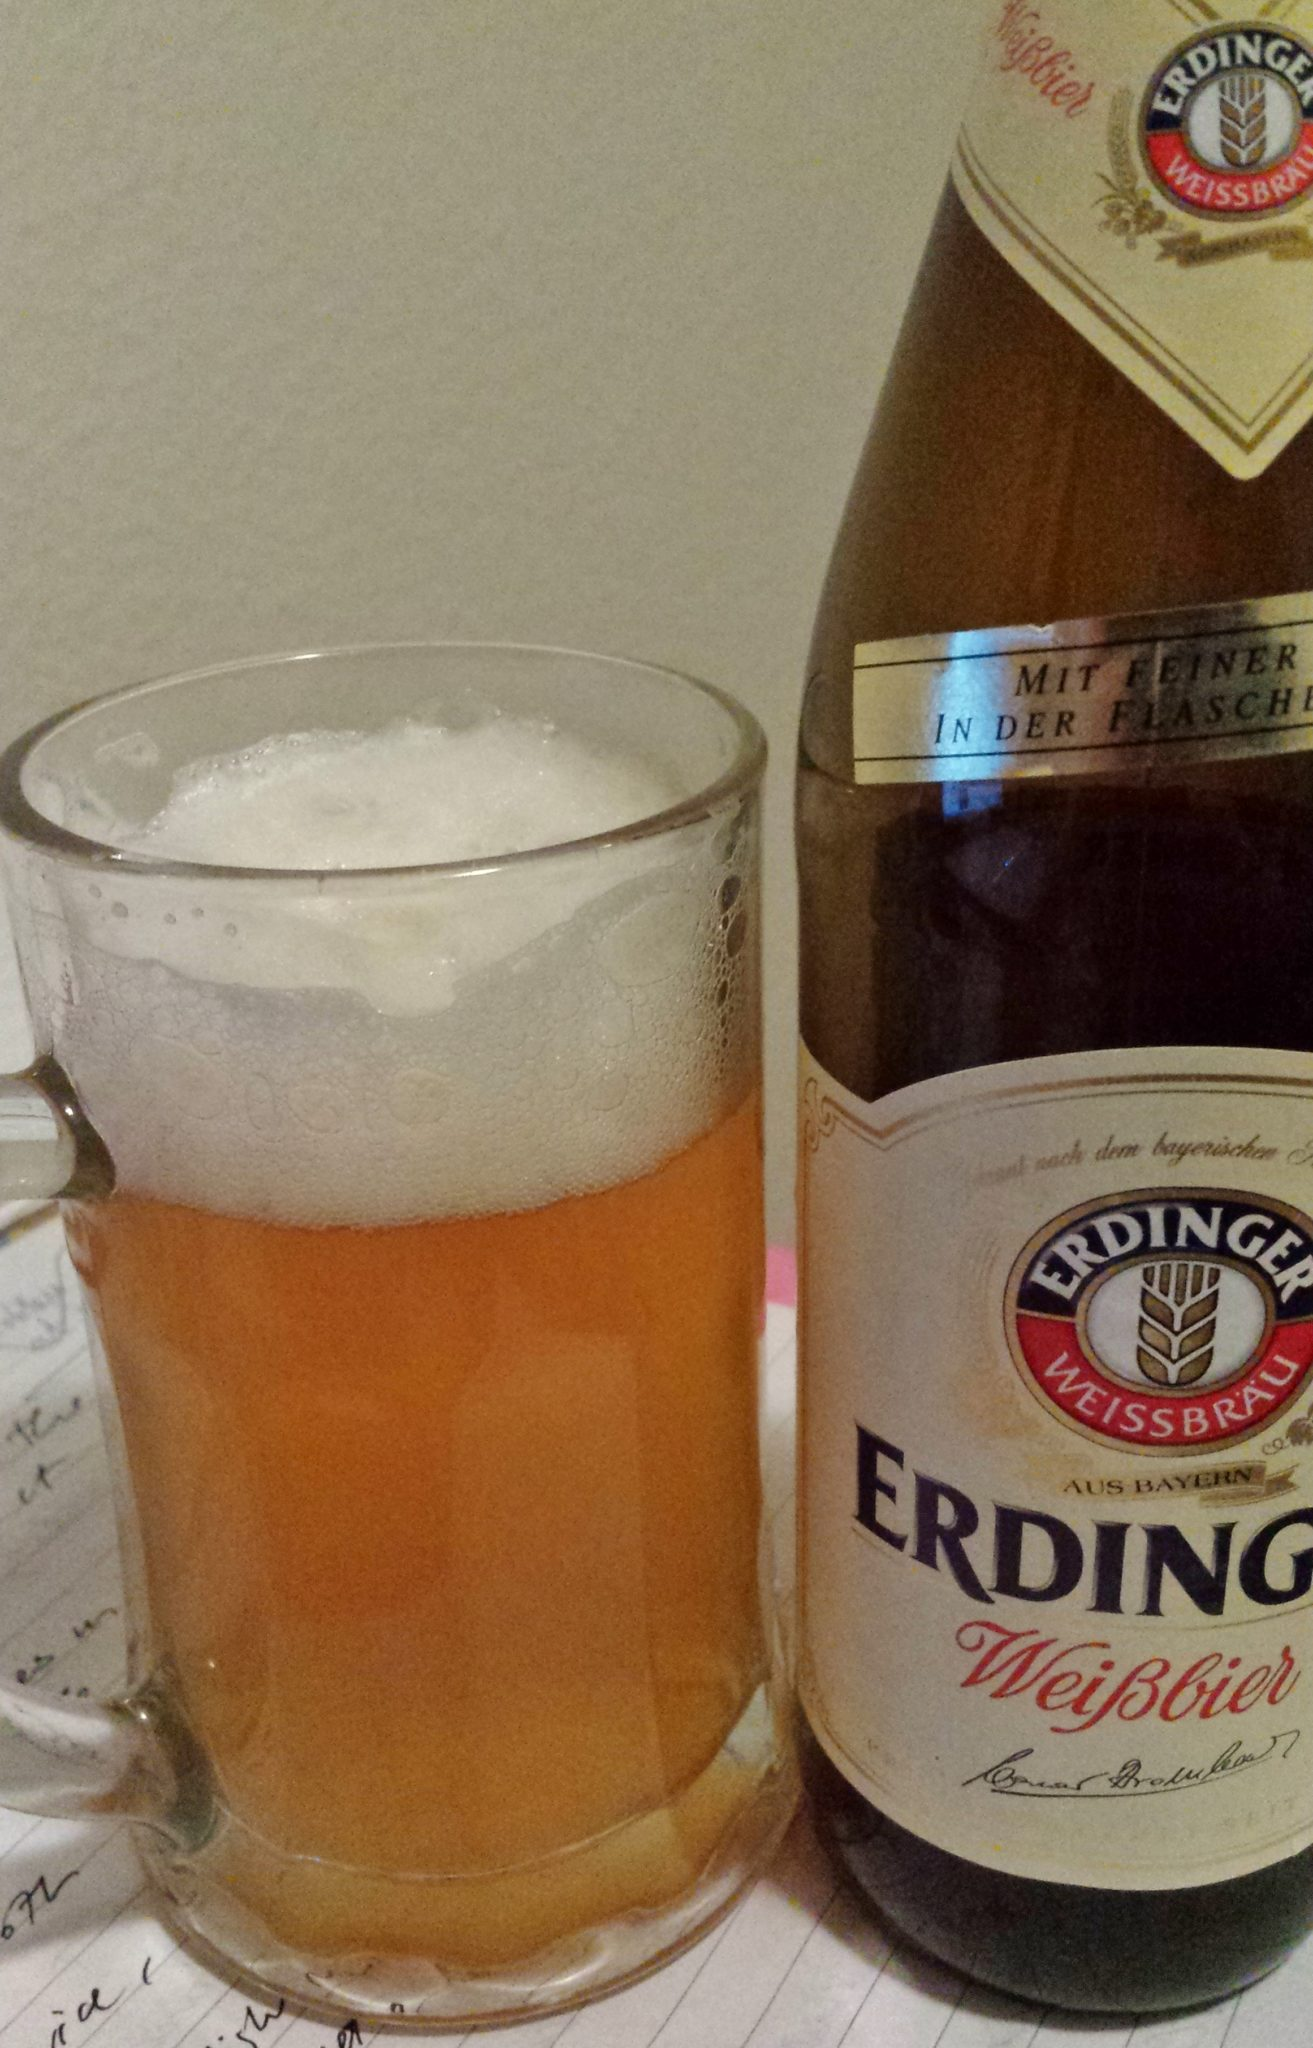 Erdinger Weissbier, The Taste of Bavaria